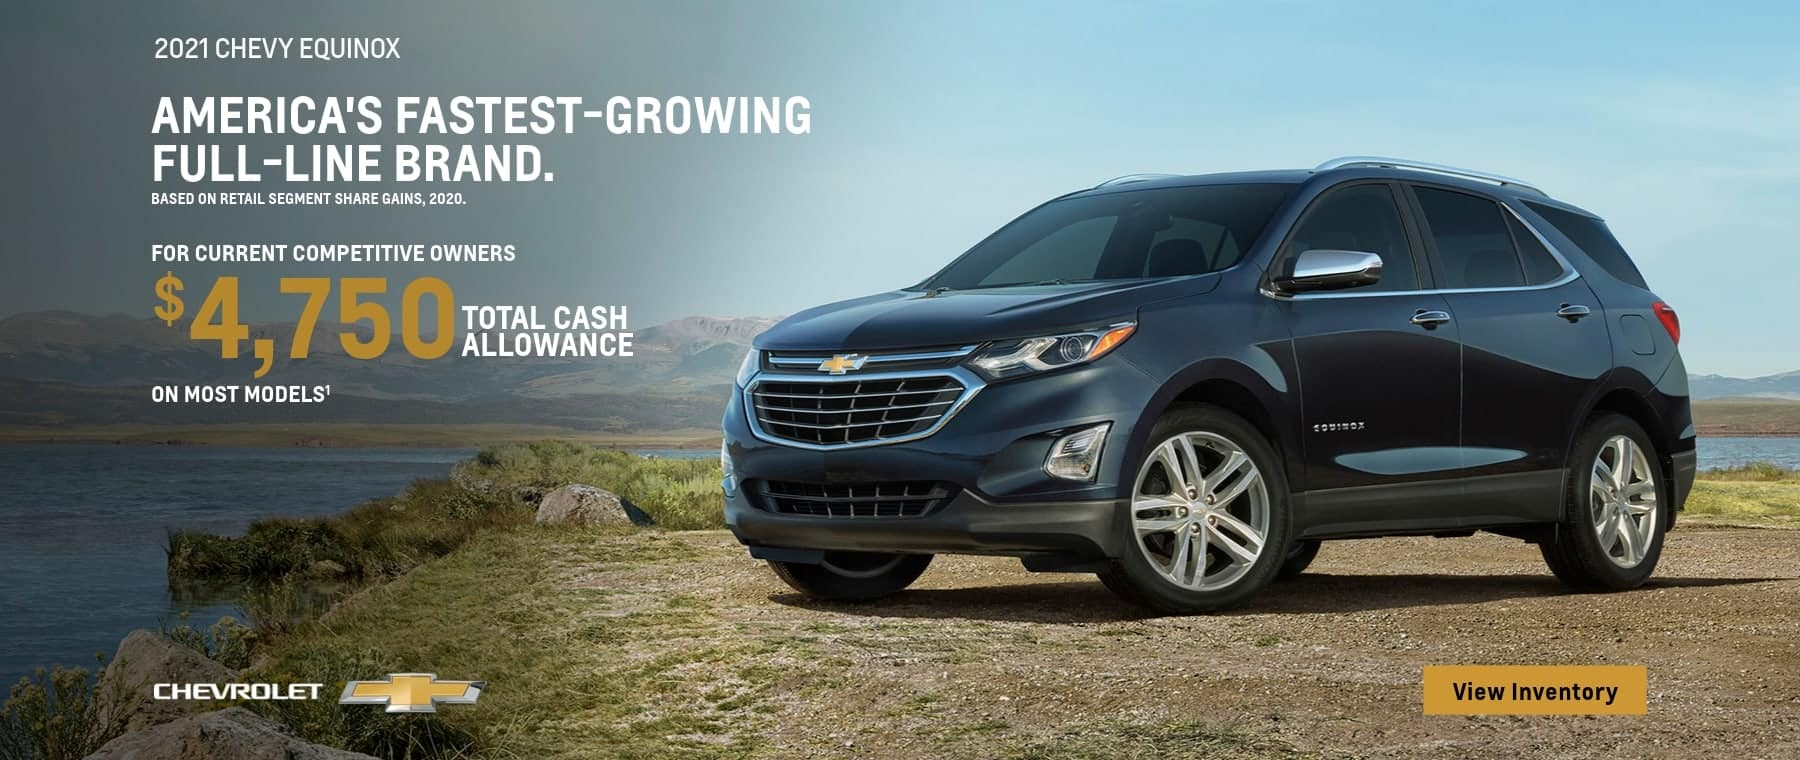 2021 Chevy Equinox For current competitive owners $4,750 Total Cash Allowance on most models.